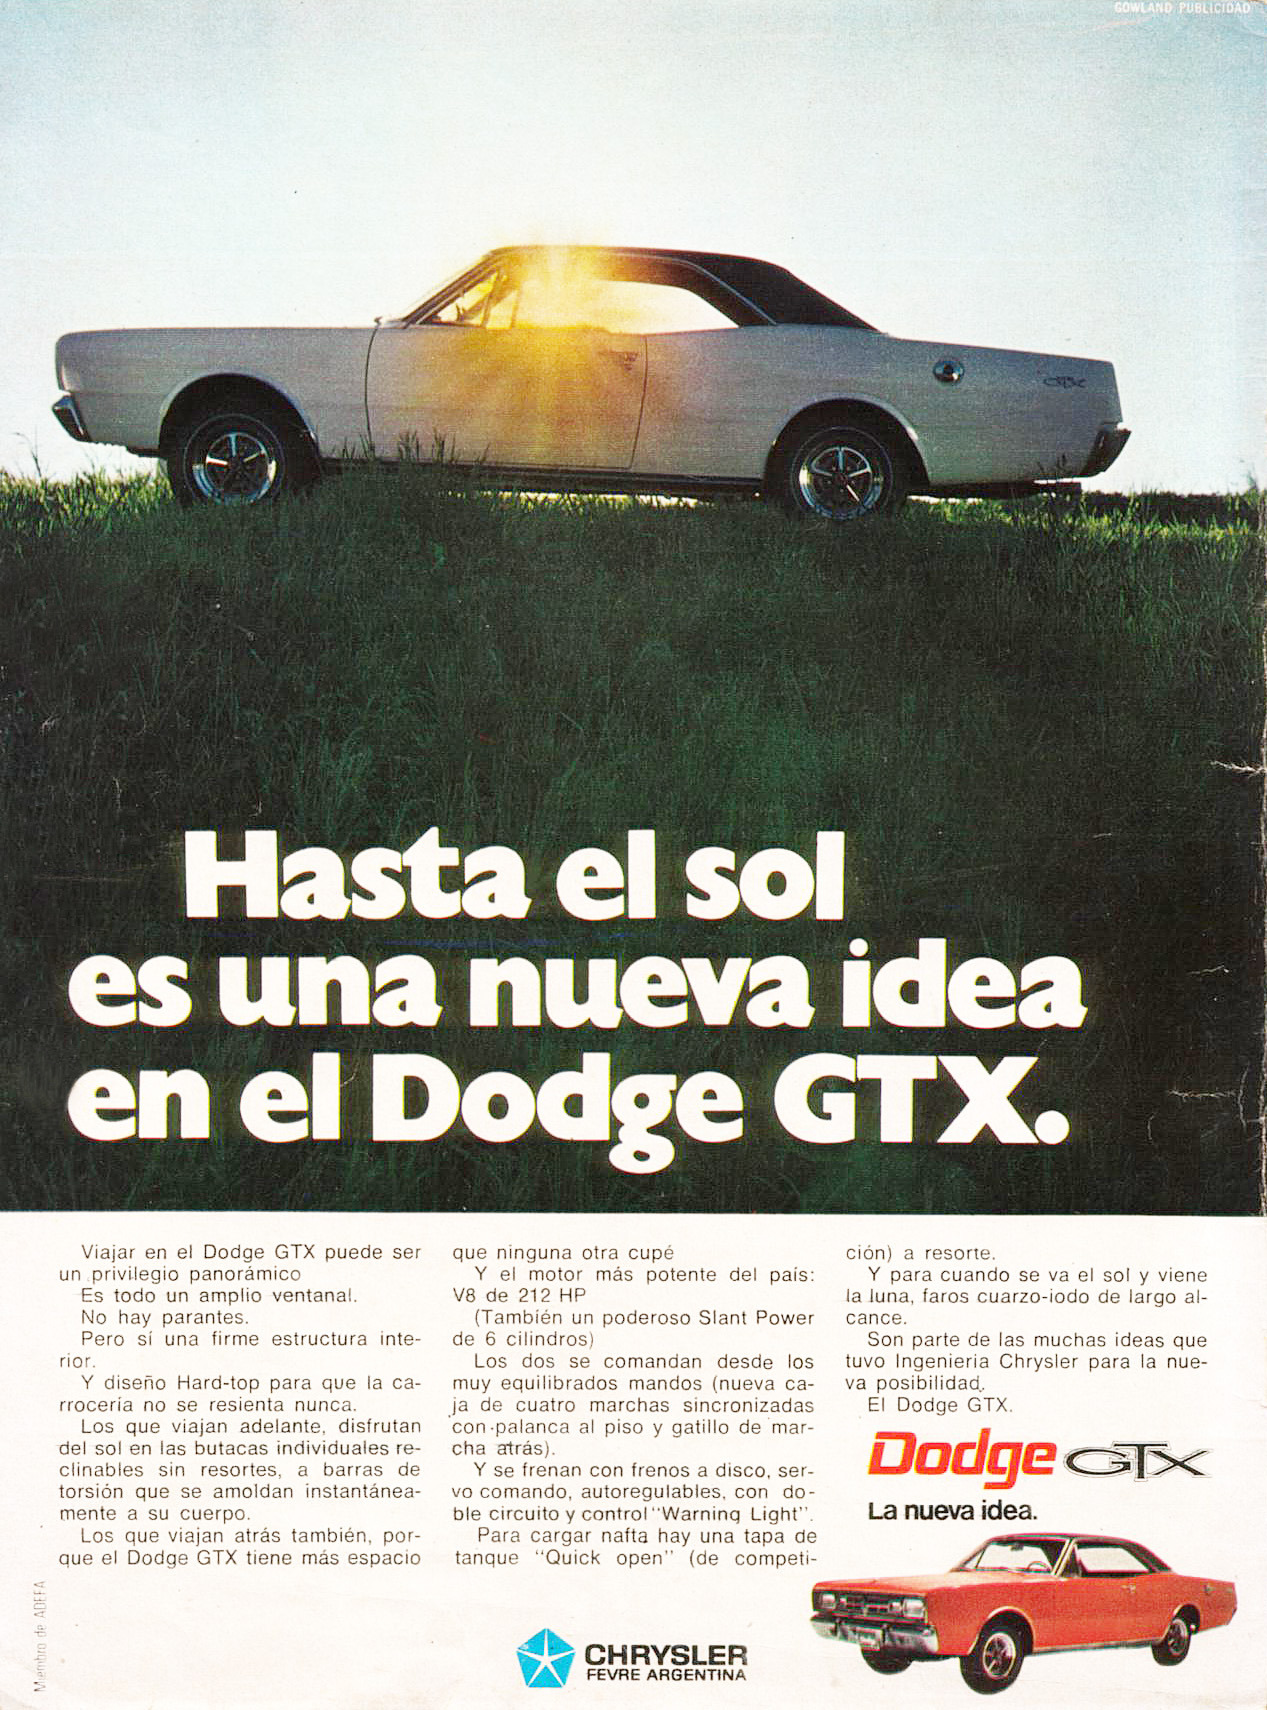 La nueva idea, Dodge GTX